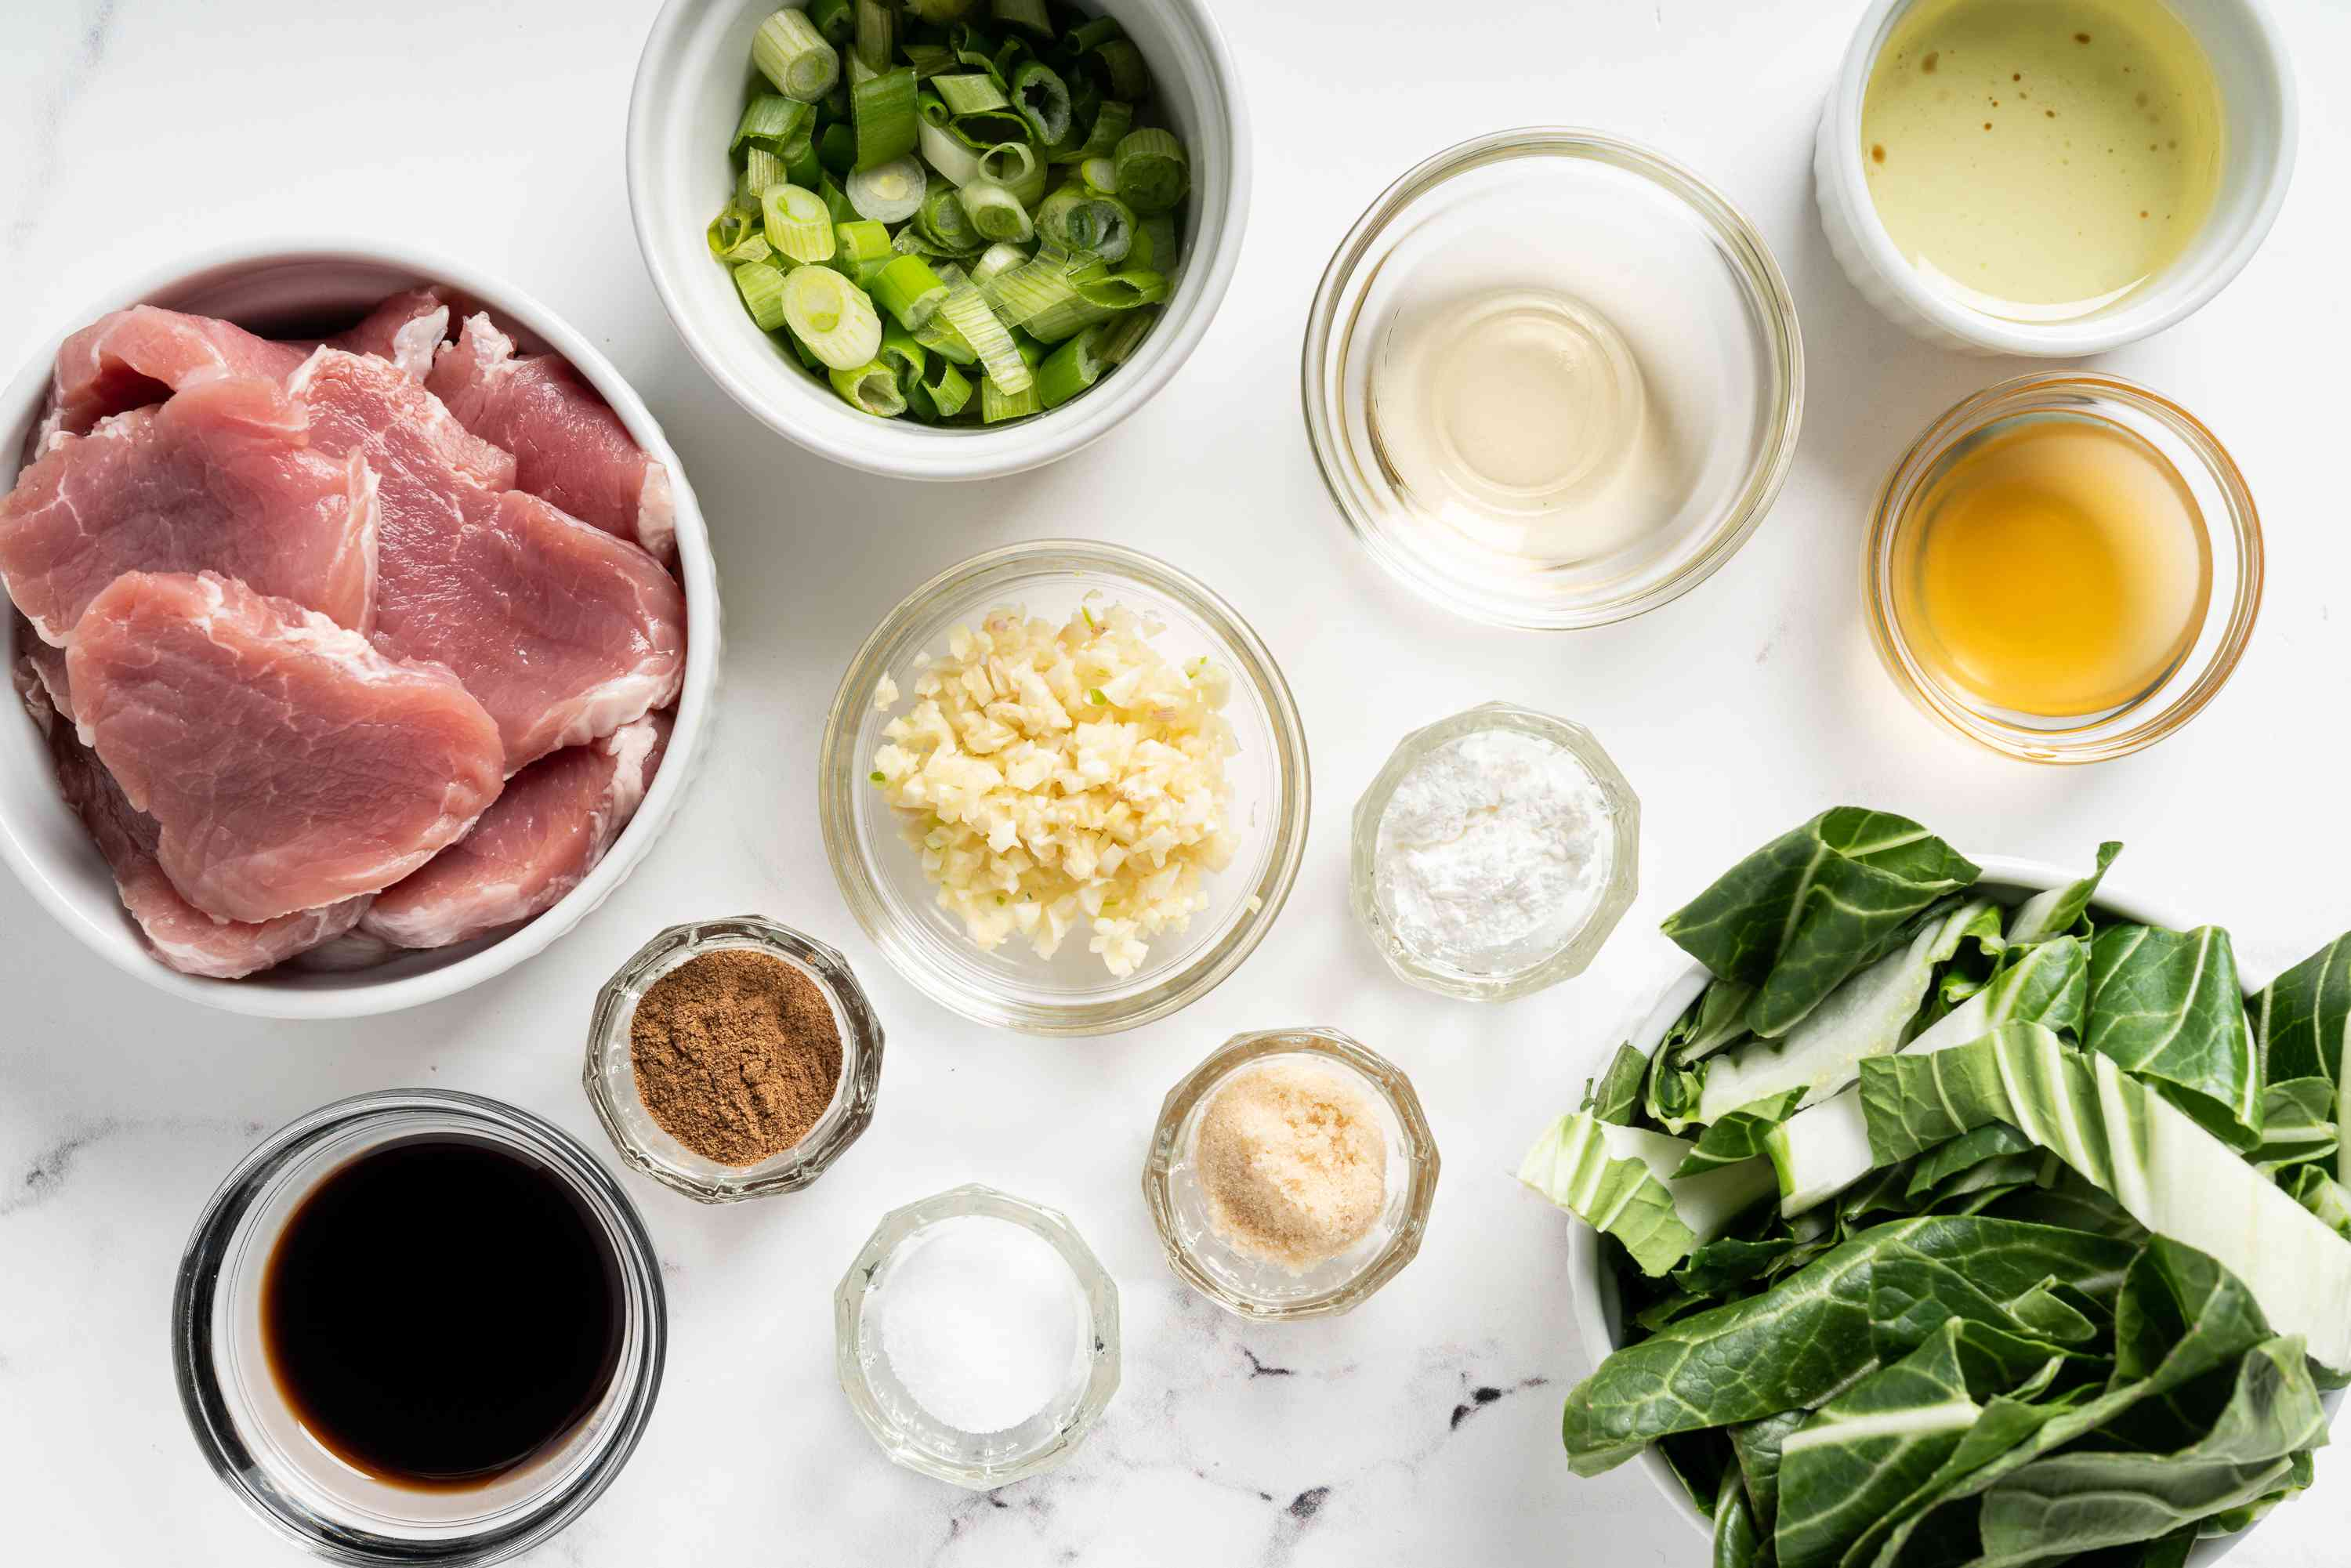 Five-Spice Pork with Bok Choy and Green Onions ingredients